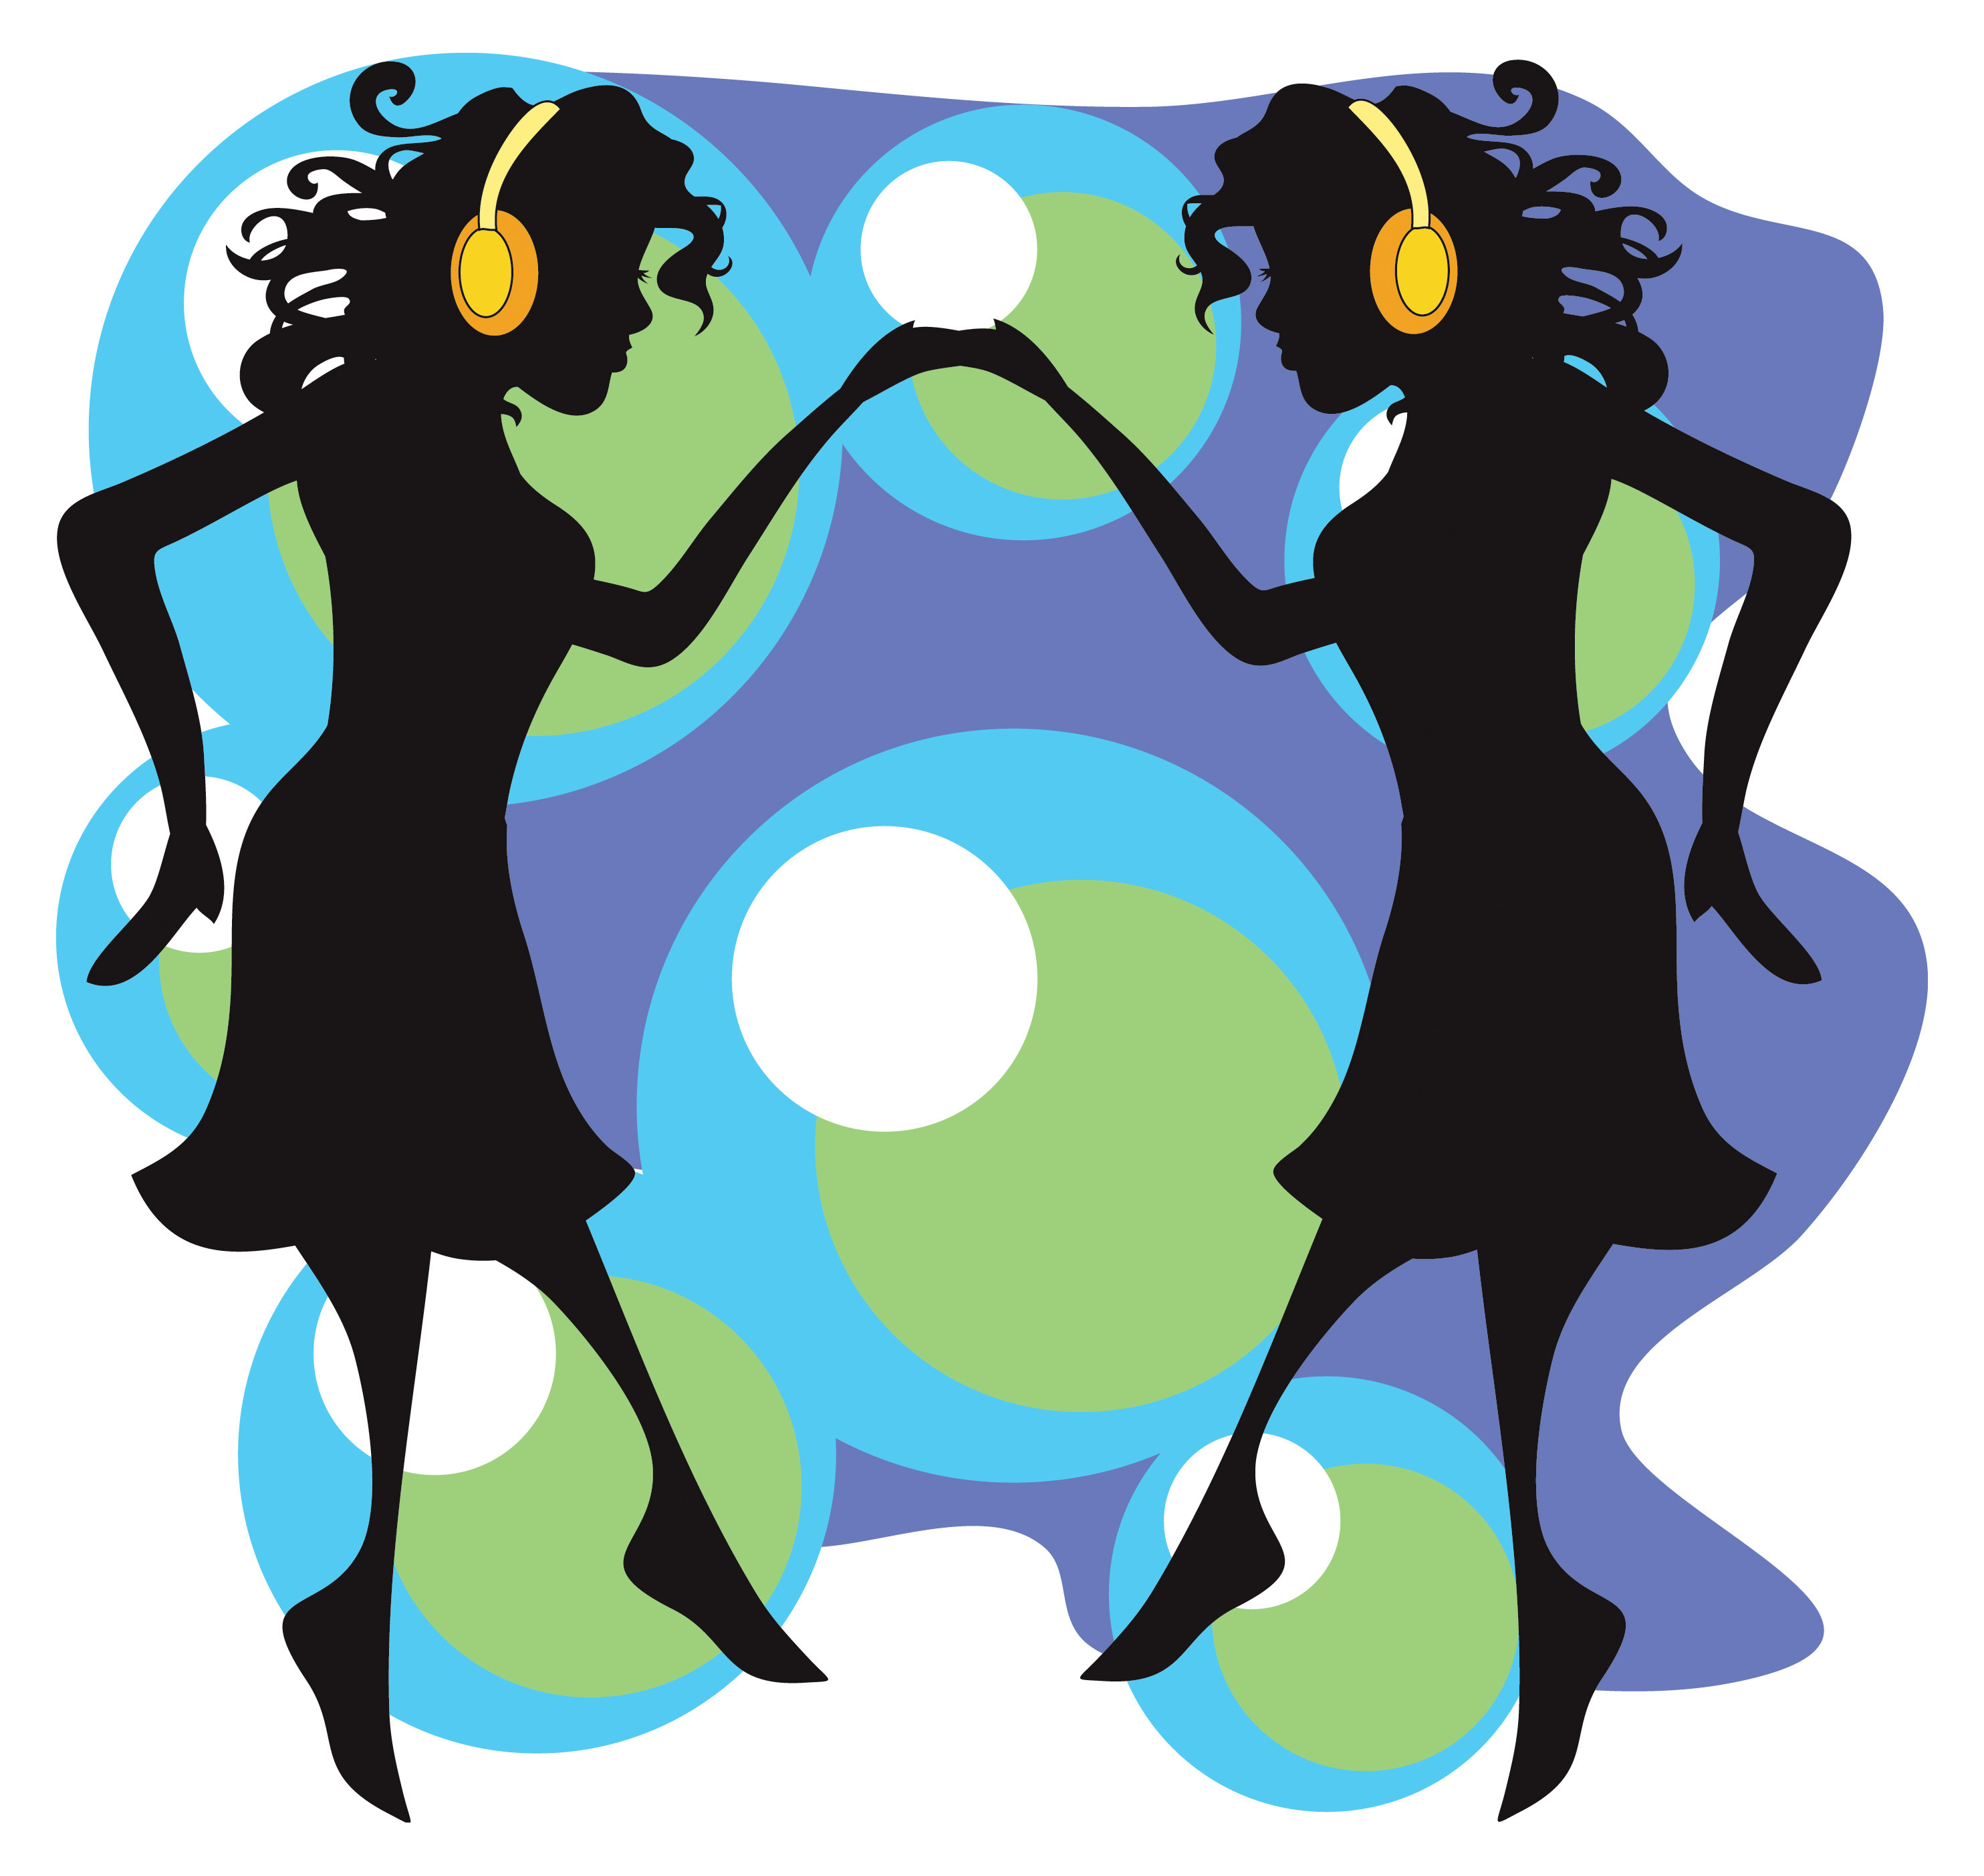 752484-istock-illustration-dancing-twins_custom-8324fe3359e5e7df0b518b0960eea4405bdd50ee